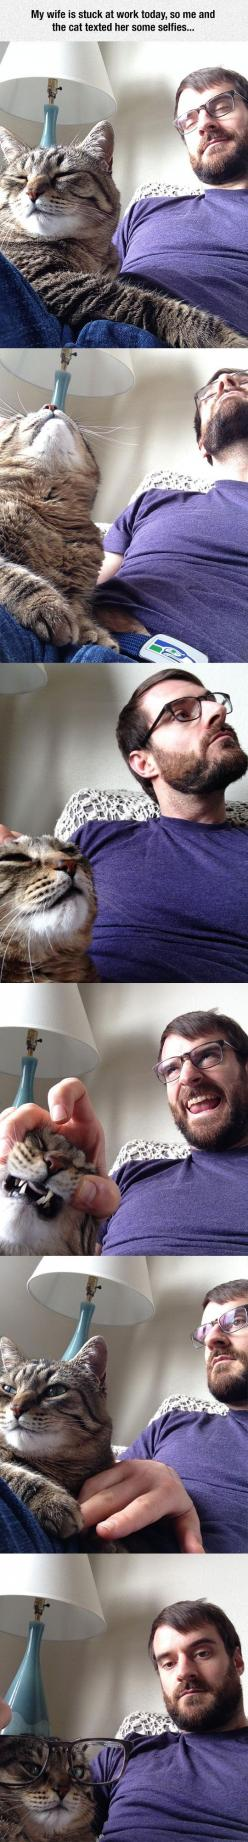 Human And Cat Selfie Time: Funny Pets, Cats And Men, Cat Selfie, Cit Cats, Men And Cats, Cat Things, Cat Funnies, Cats Friends Human